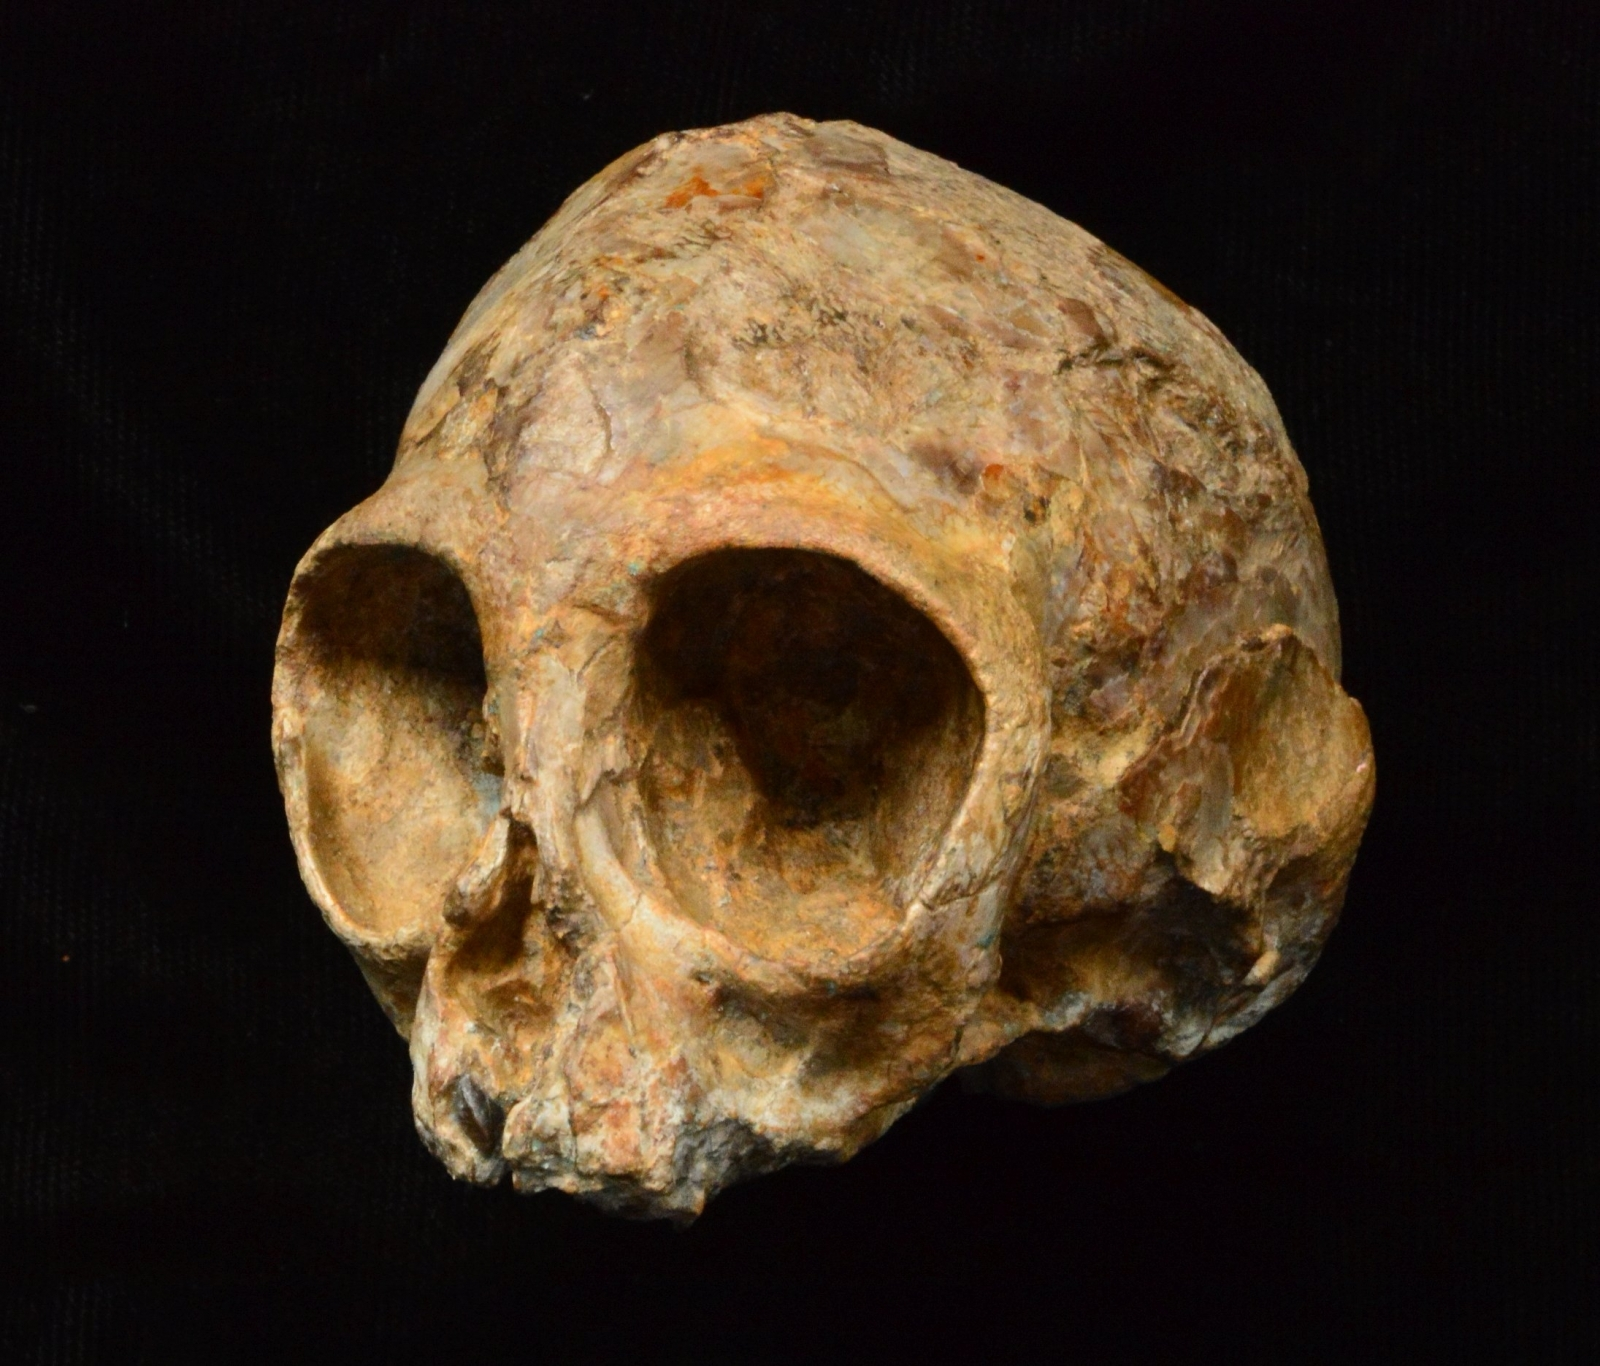 Extremely rare 13 million-year-old primate skull found